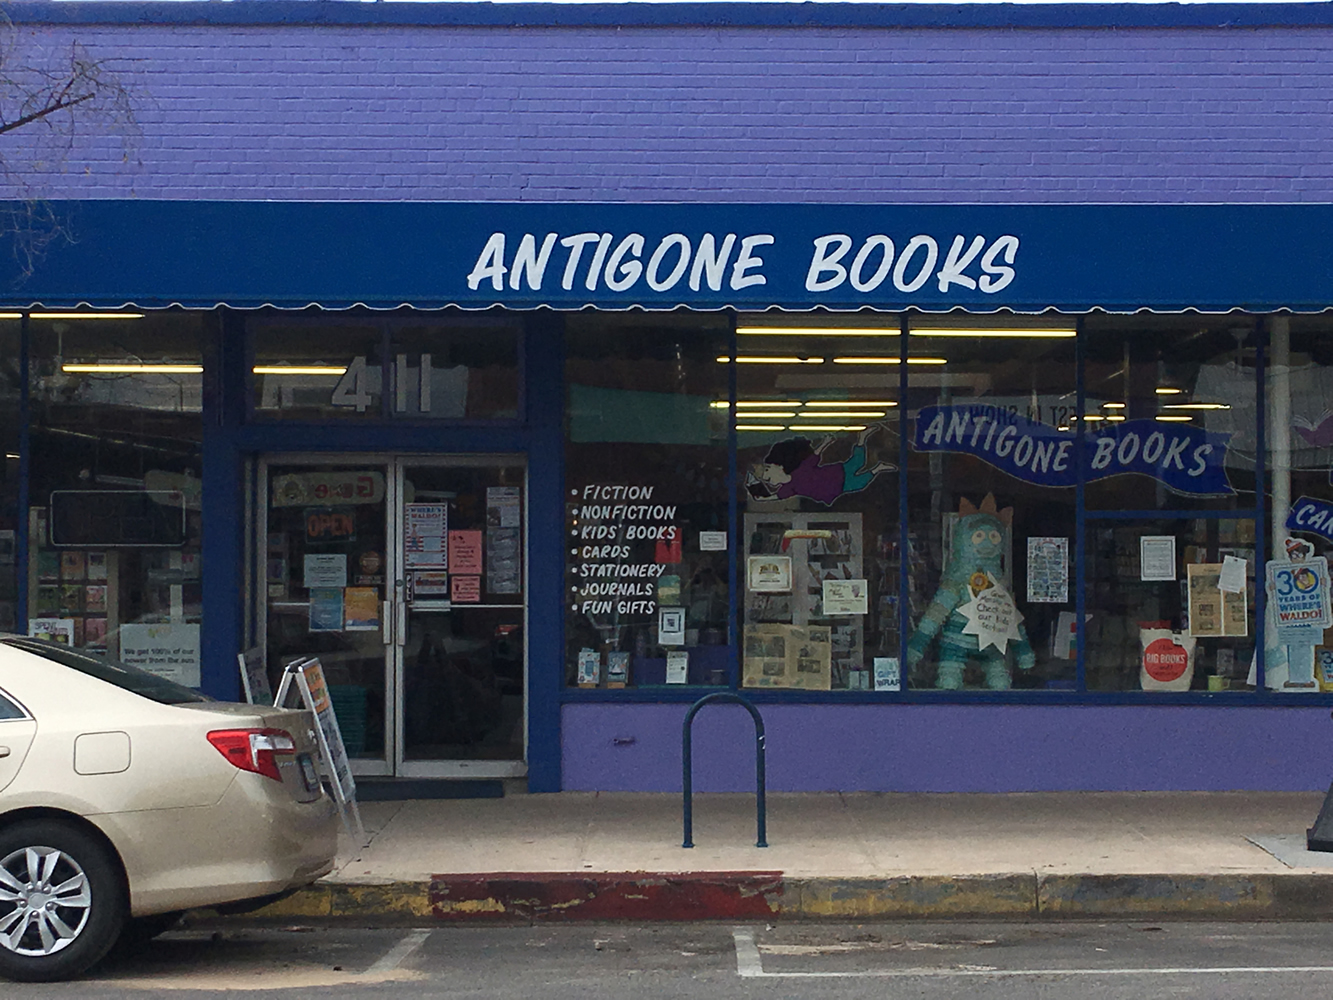 Antigone Books, Tucson, AZ - on Neighborhood Info and Resources page